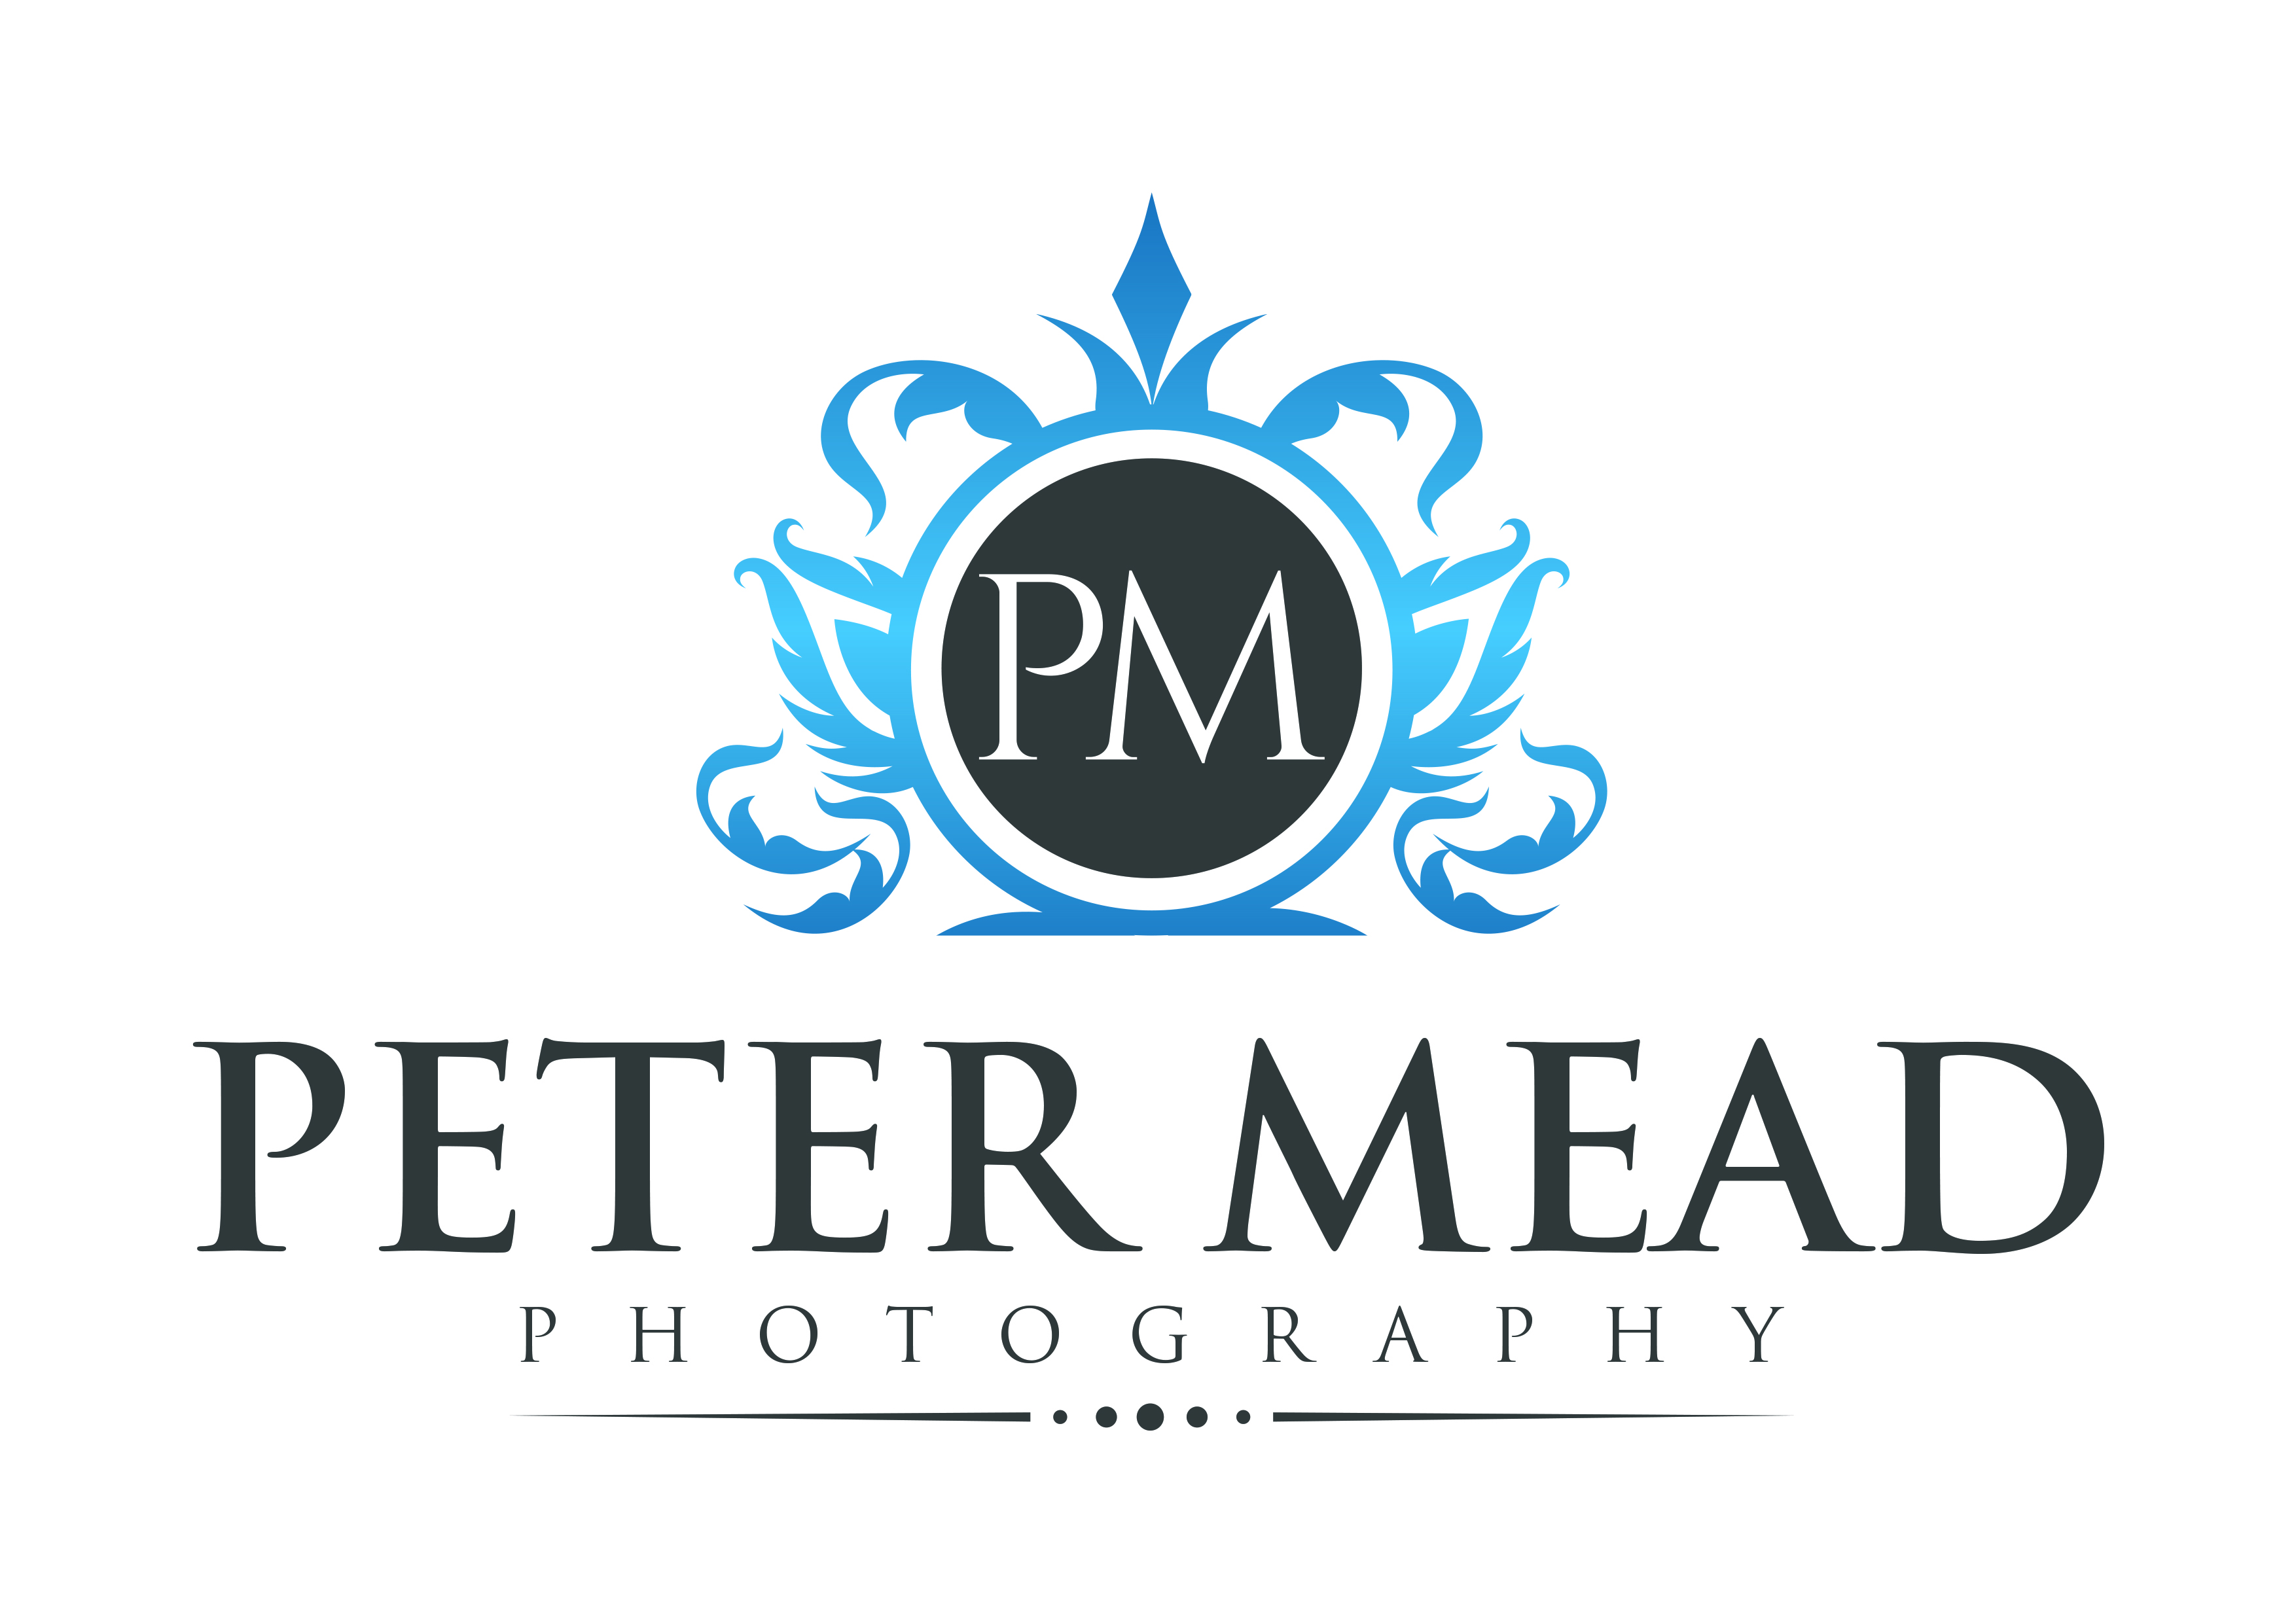 Peter Mead Photography